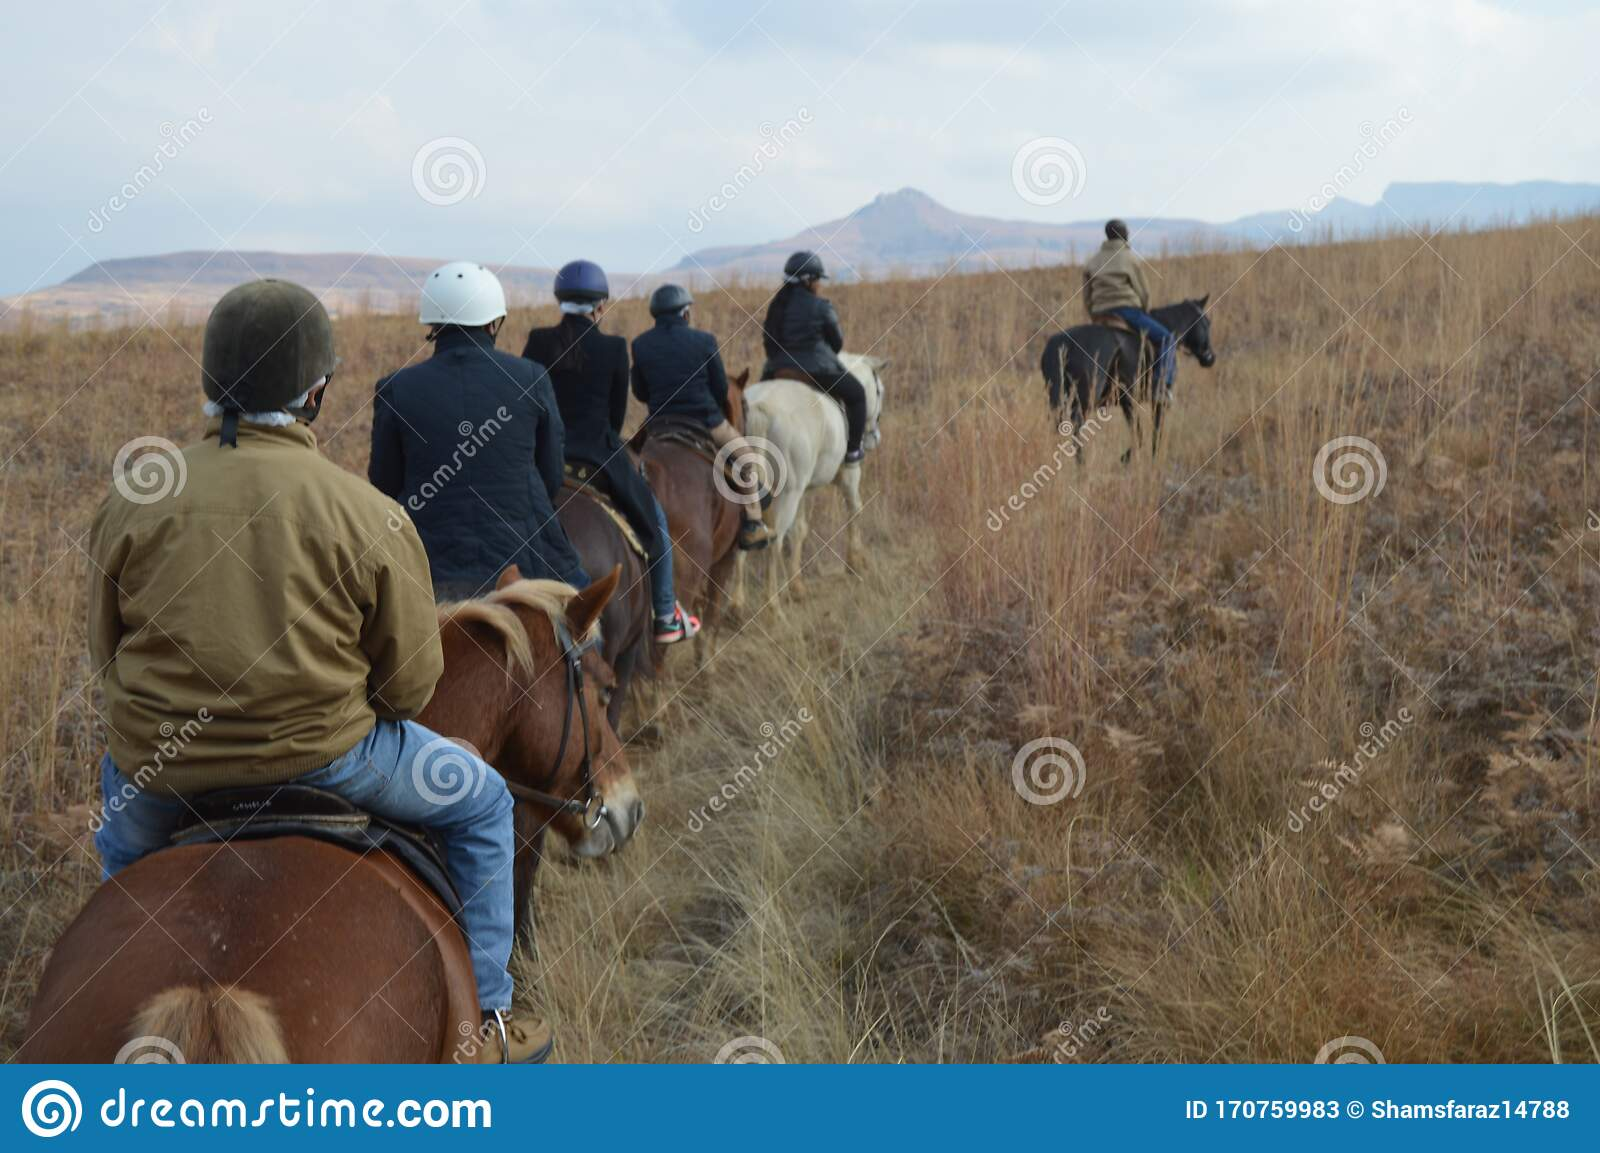 Group Of Indian Horse Riding Riders On A Trail In Drakensberg Region In South Africa Editorial Stock Photo Image Of Outdoors Back 170759983